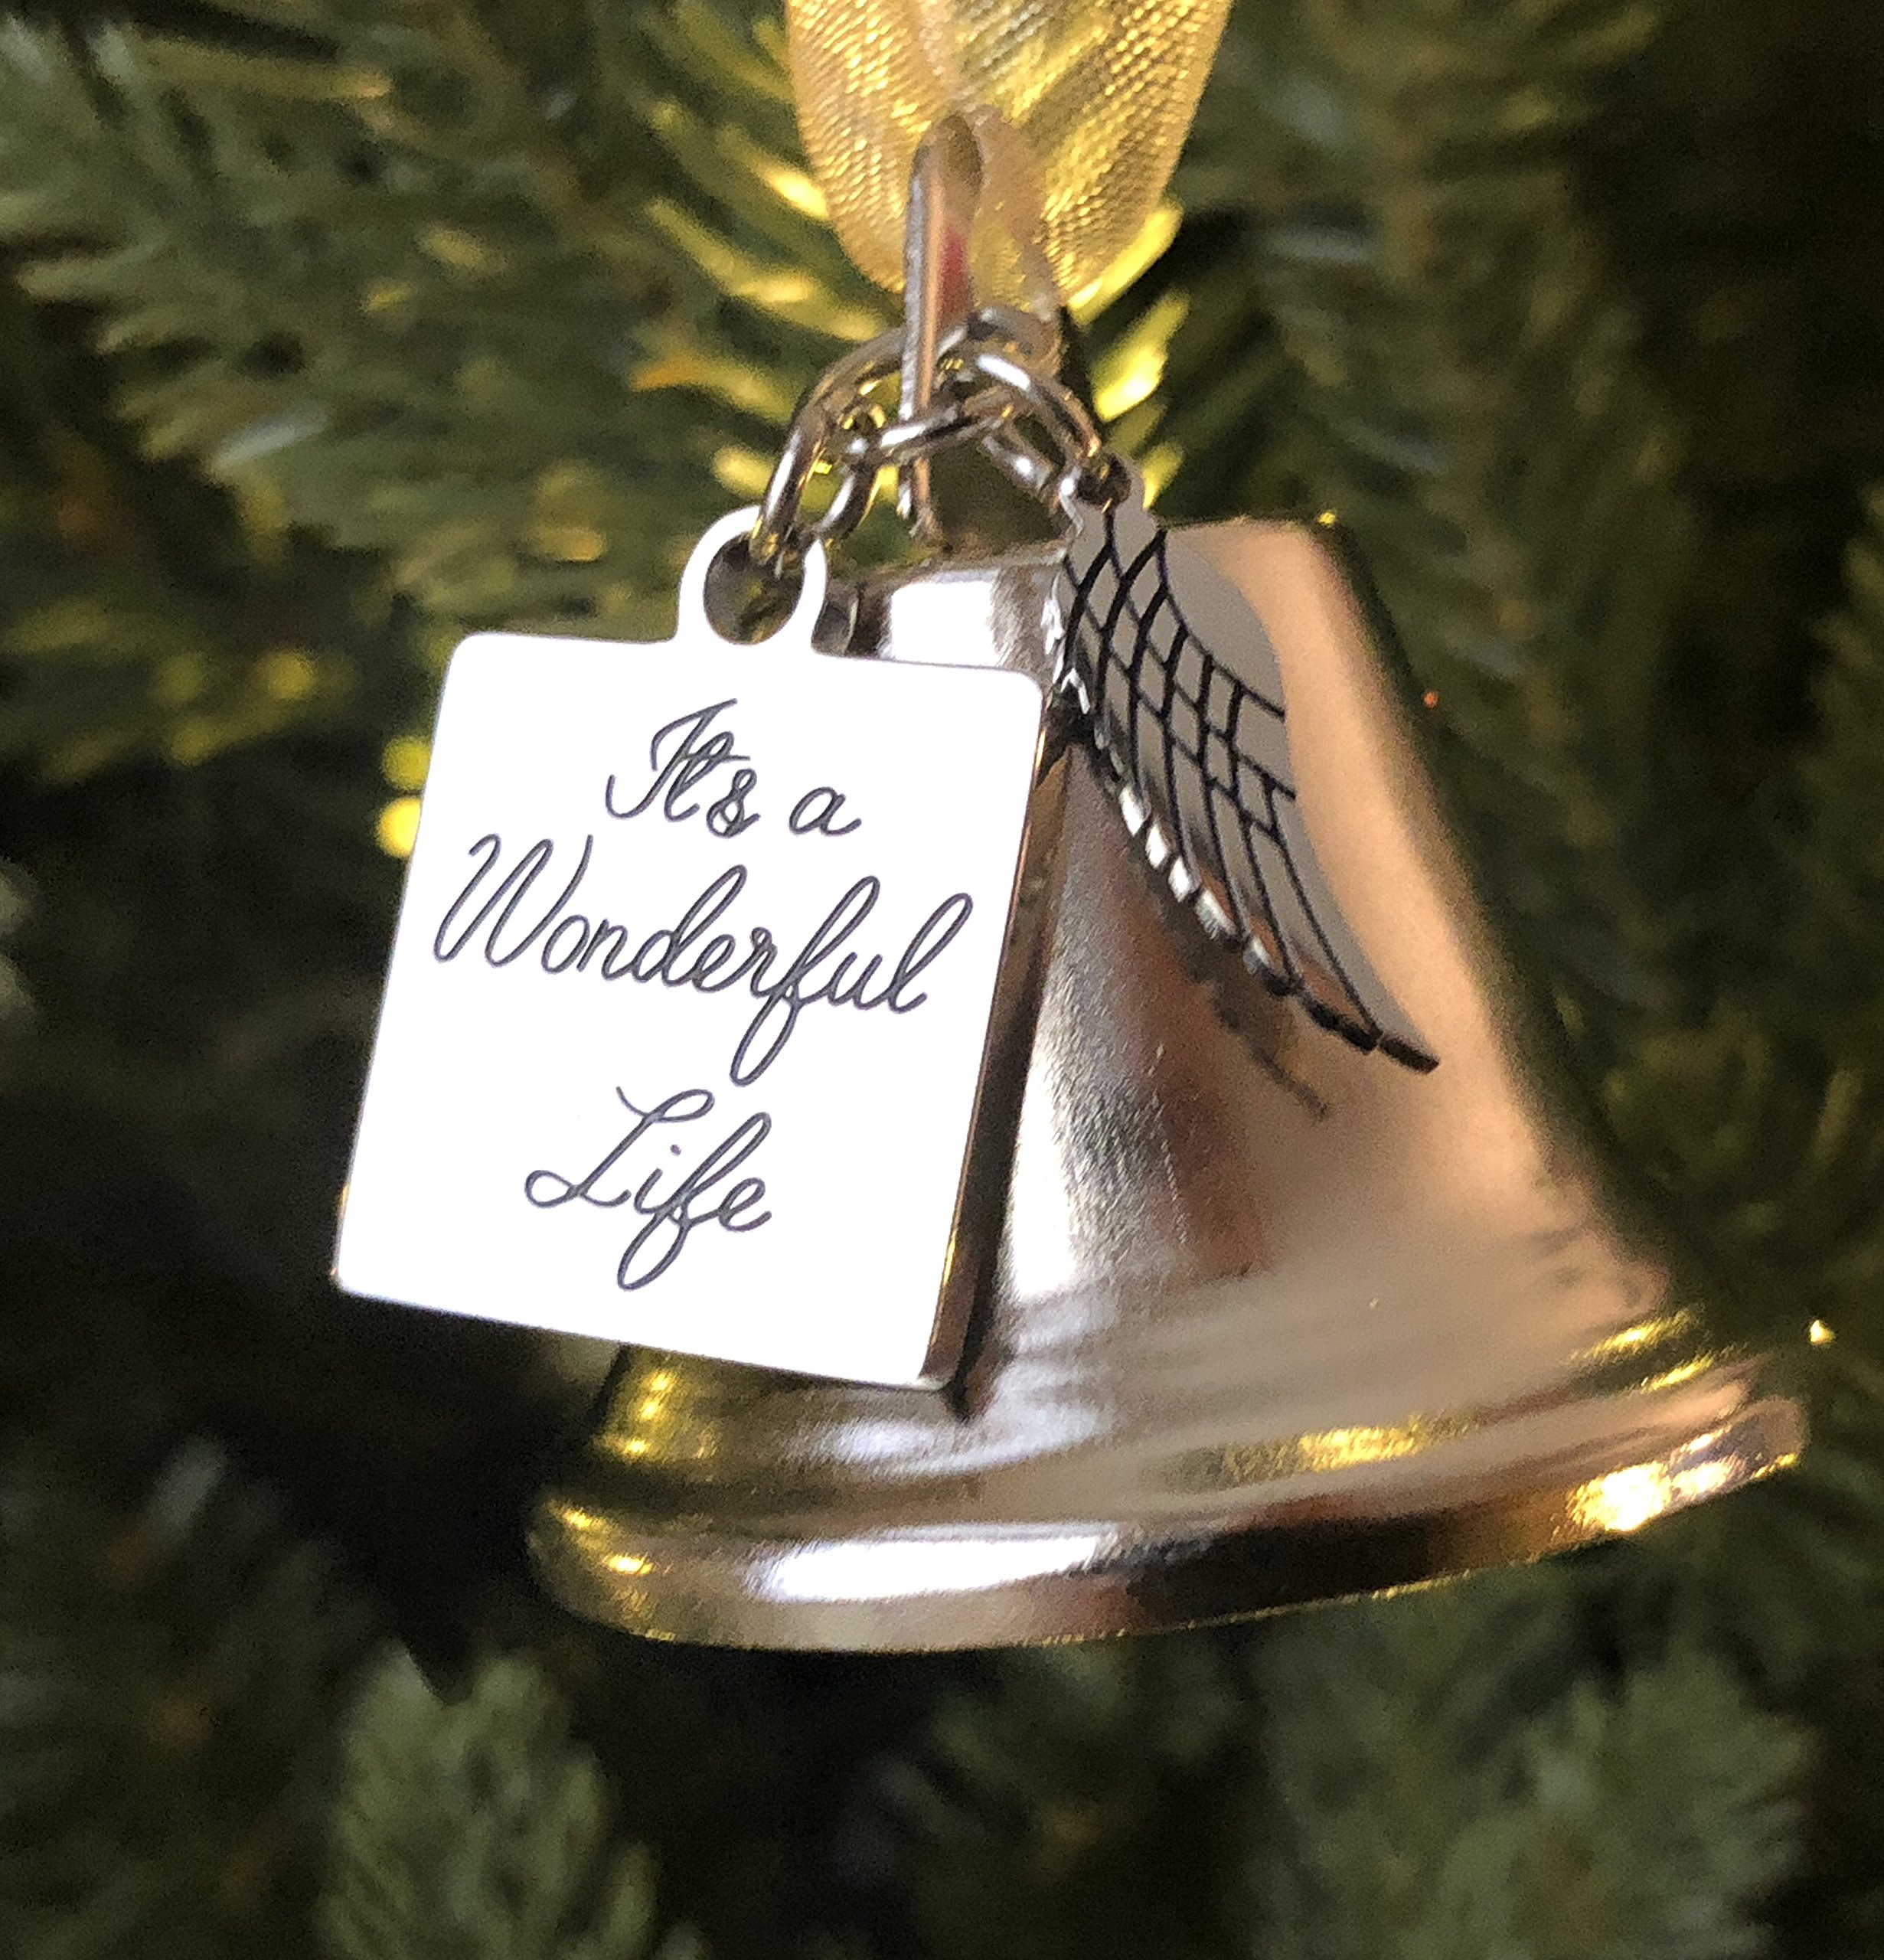 It's a Wonderful Life Inspired Christmas Angel Bell Ornament with Stainless Steel Angel Wing Charm. New Larger Size and Now Comes with 2 Interchangeable Ribbons.